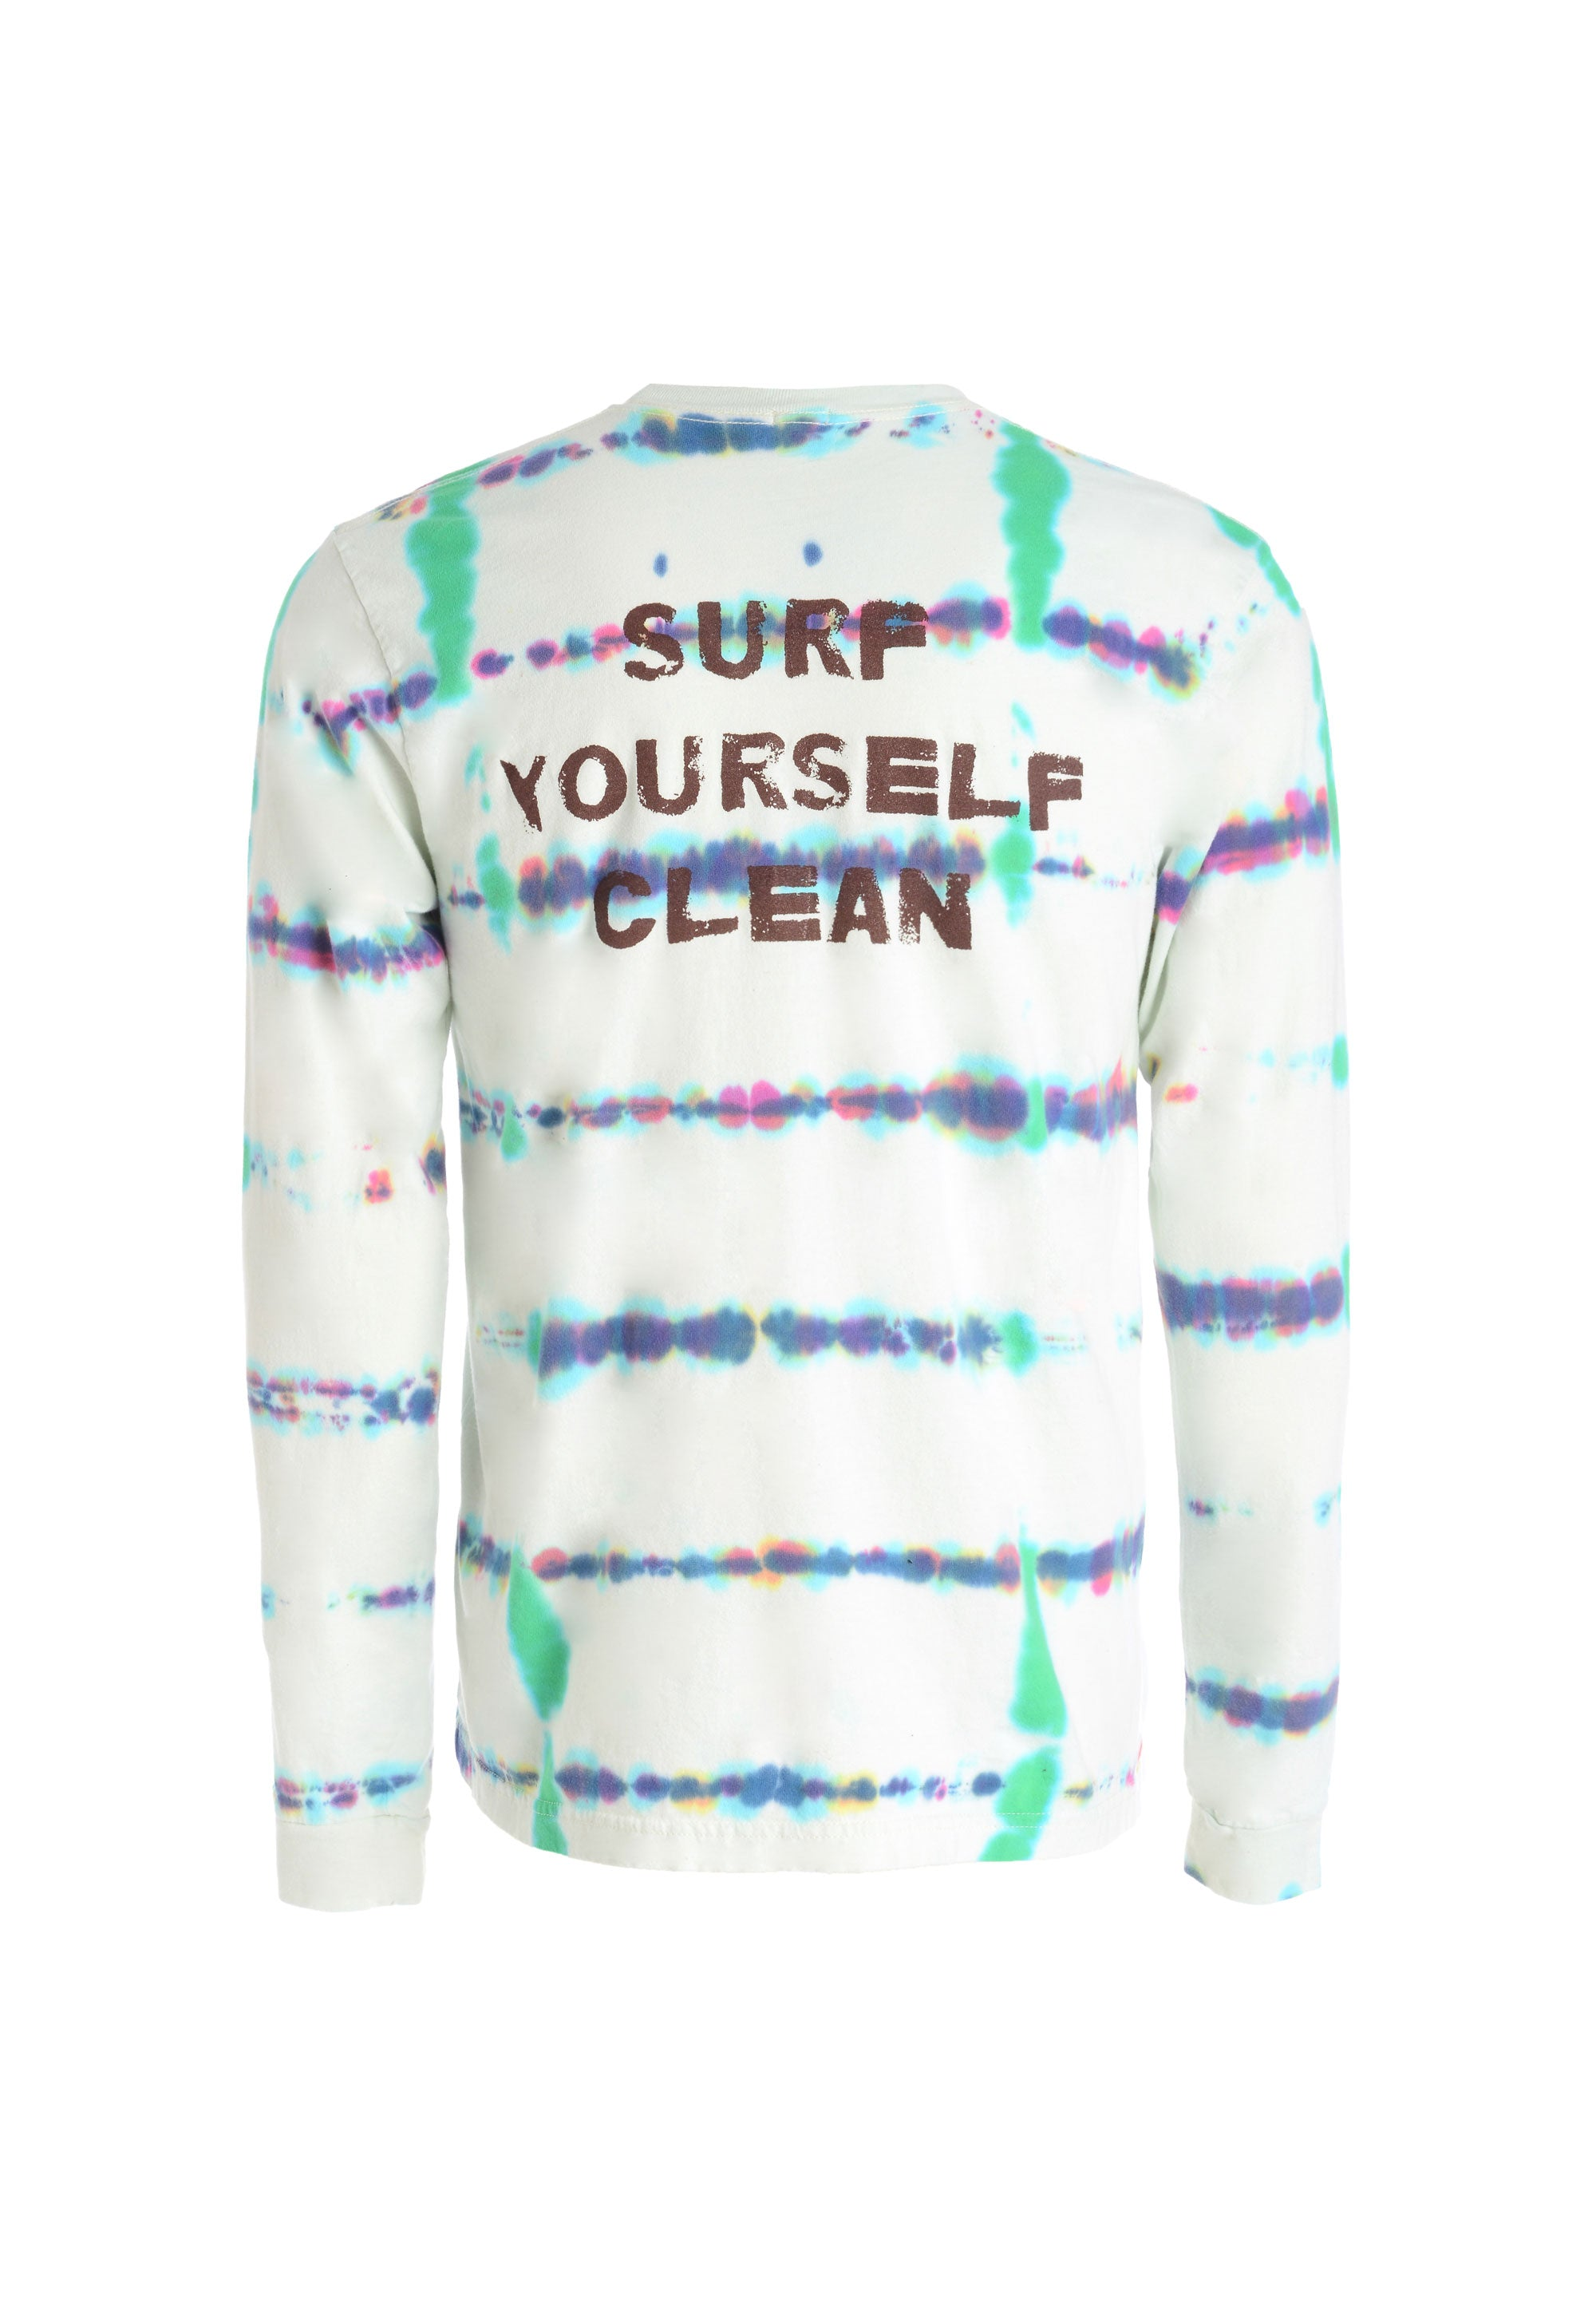 surf yourself clean tee